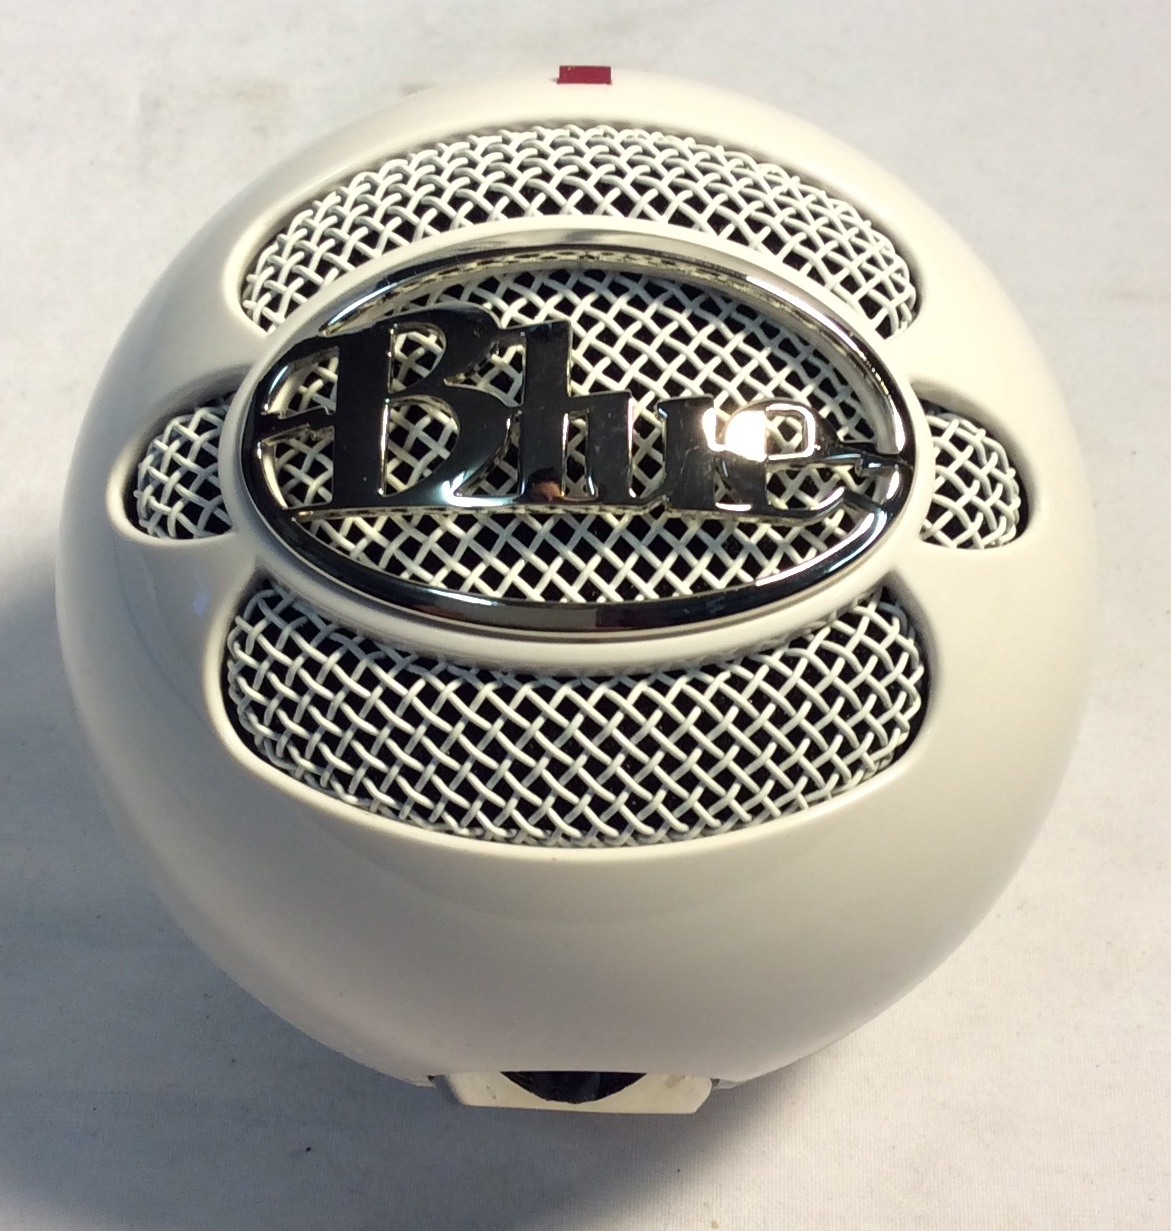 Snowball Ice Podcast microphone